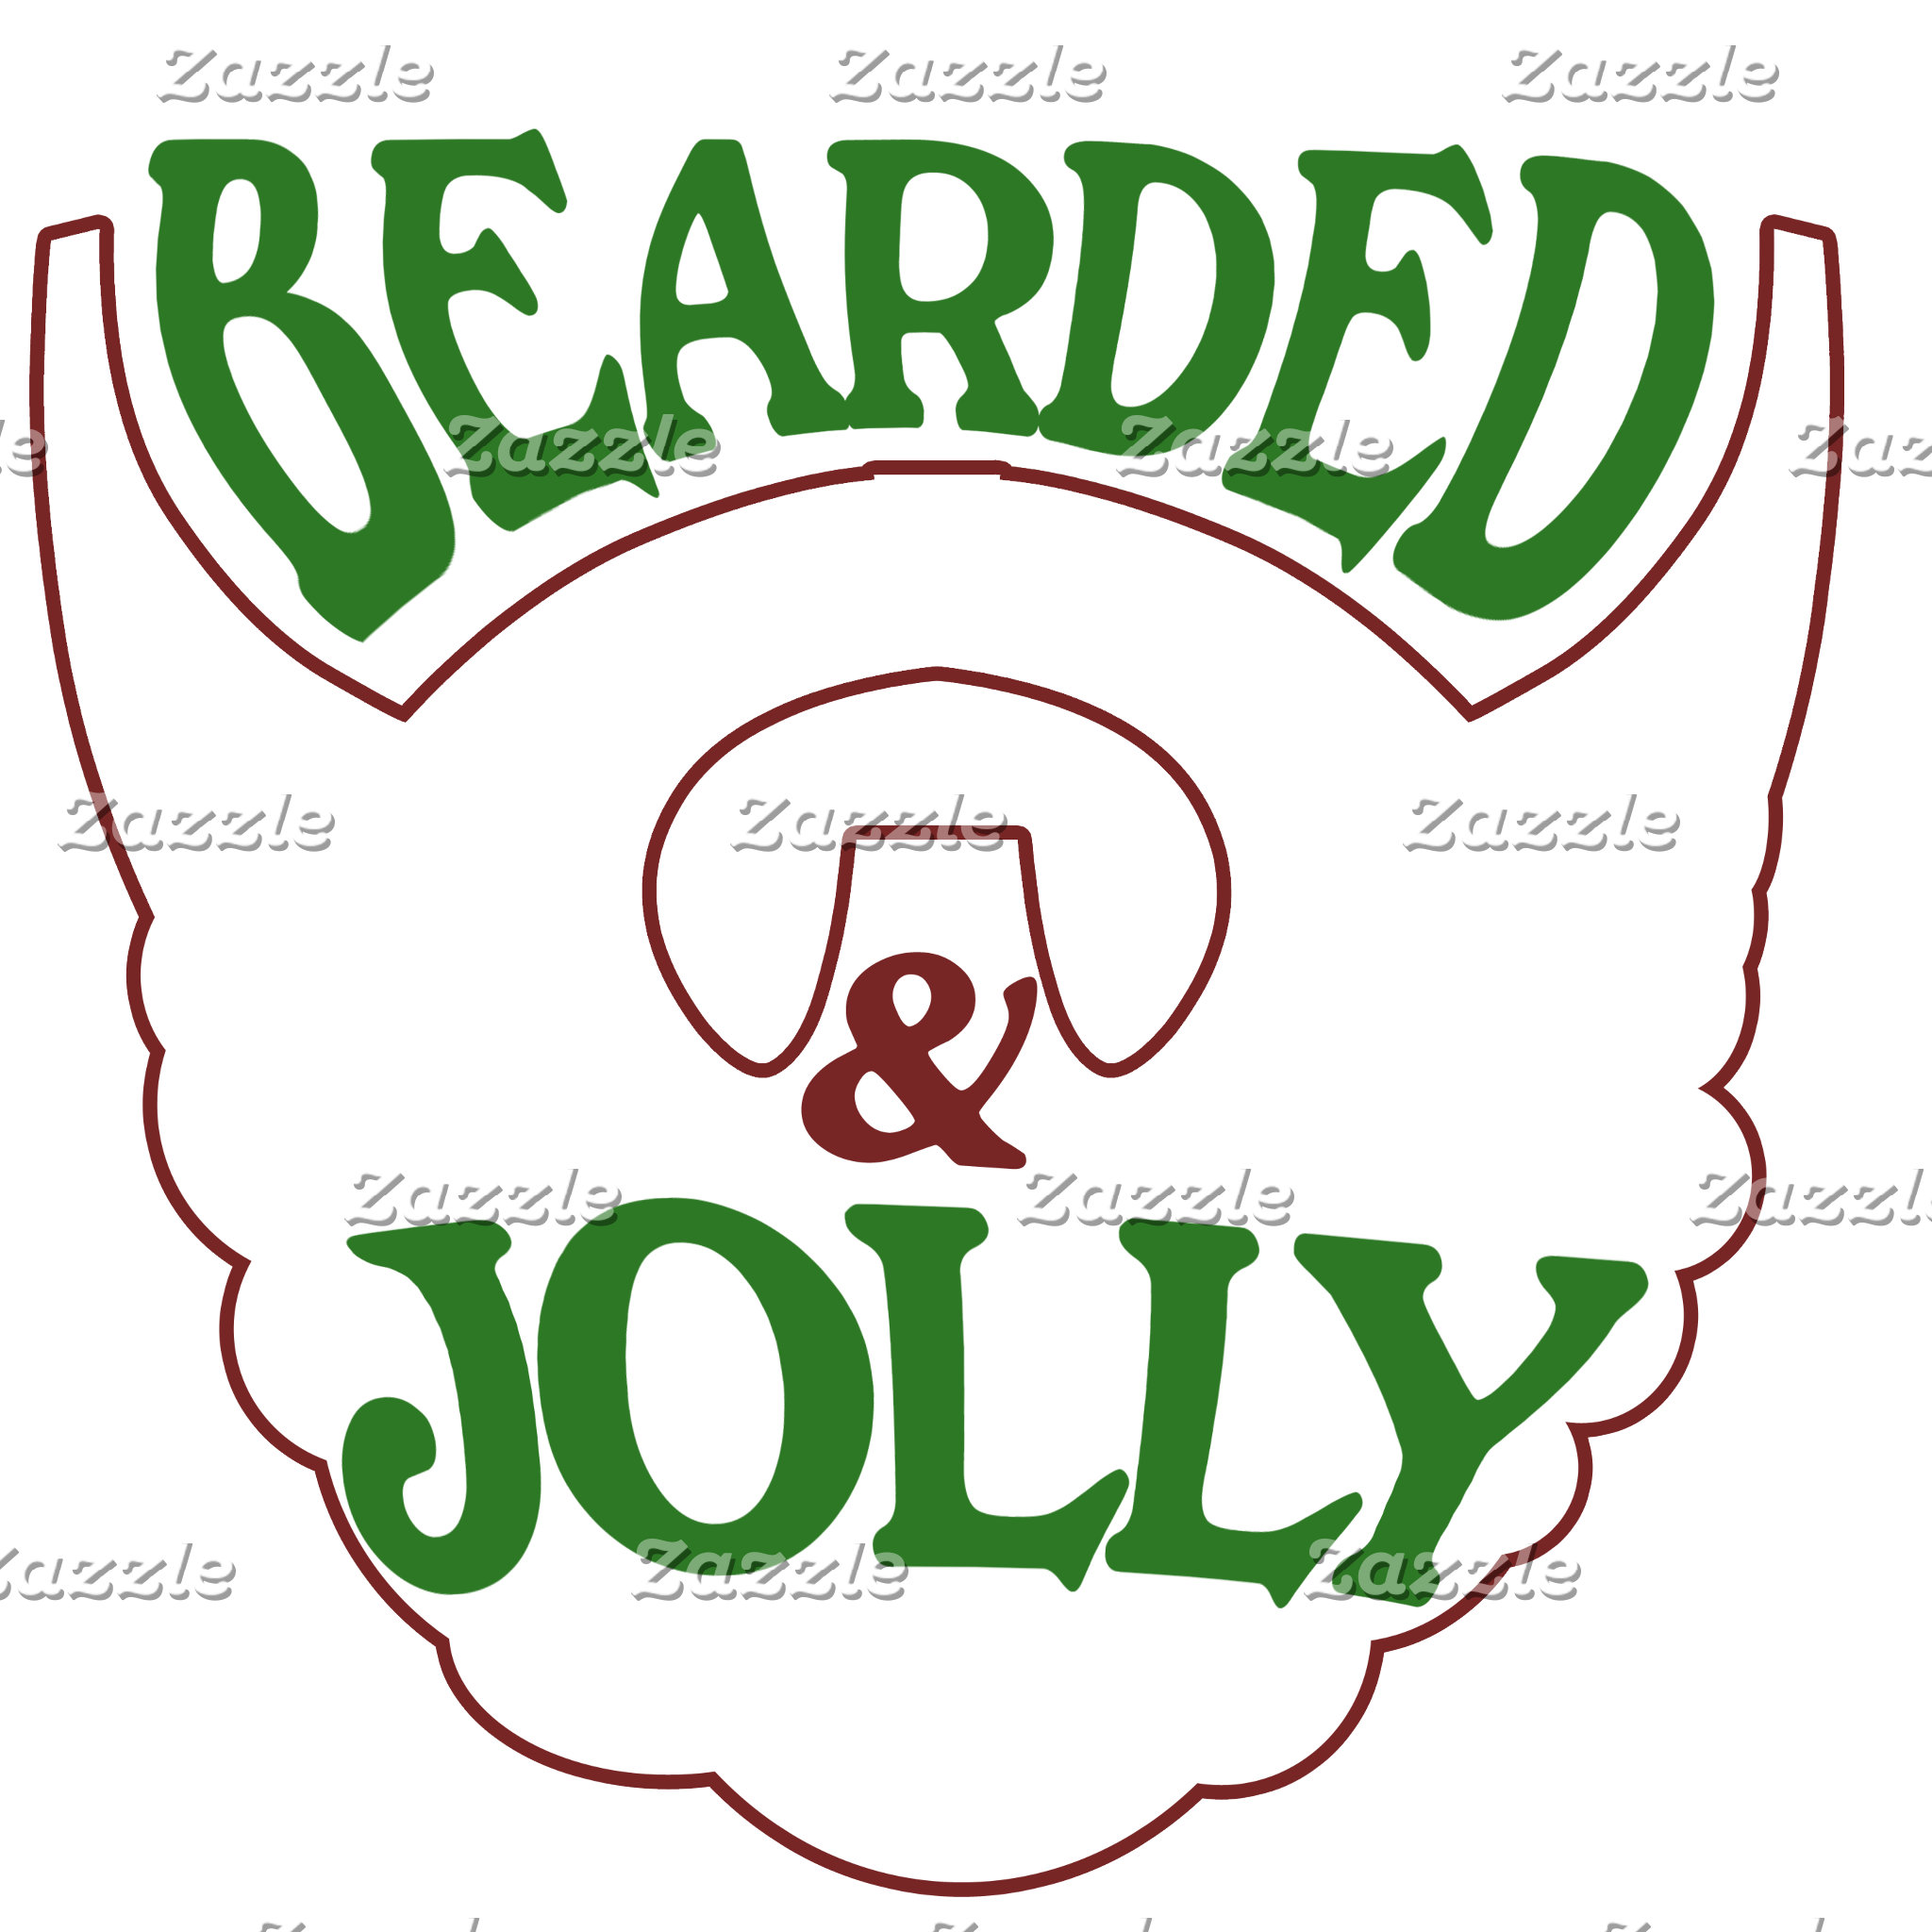 Bearded and Jolly